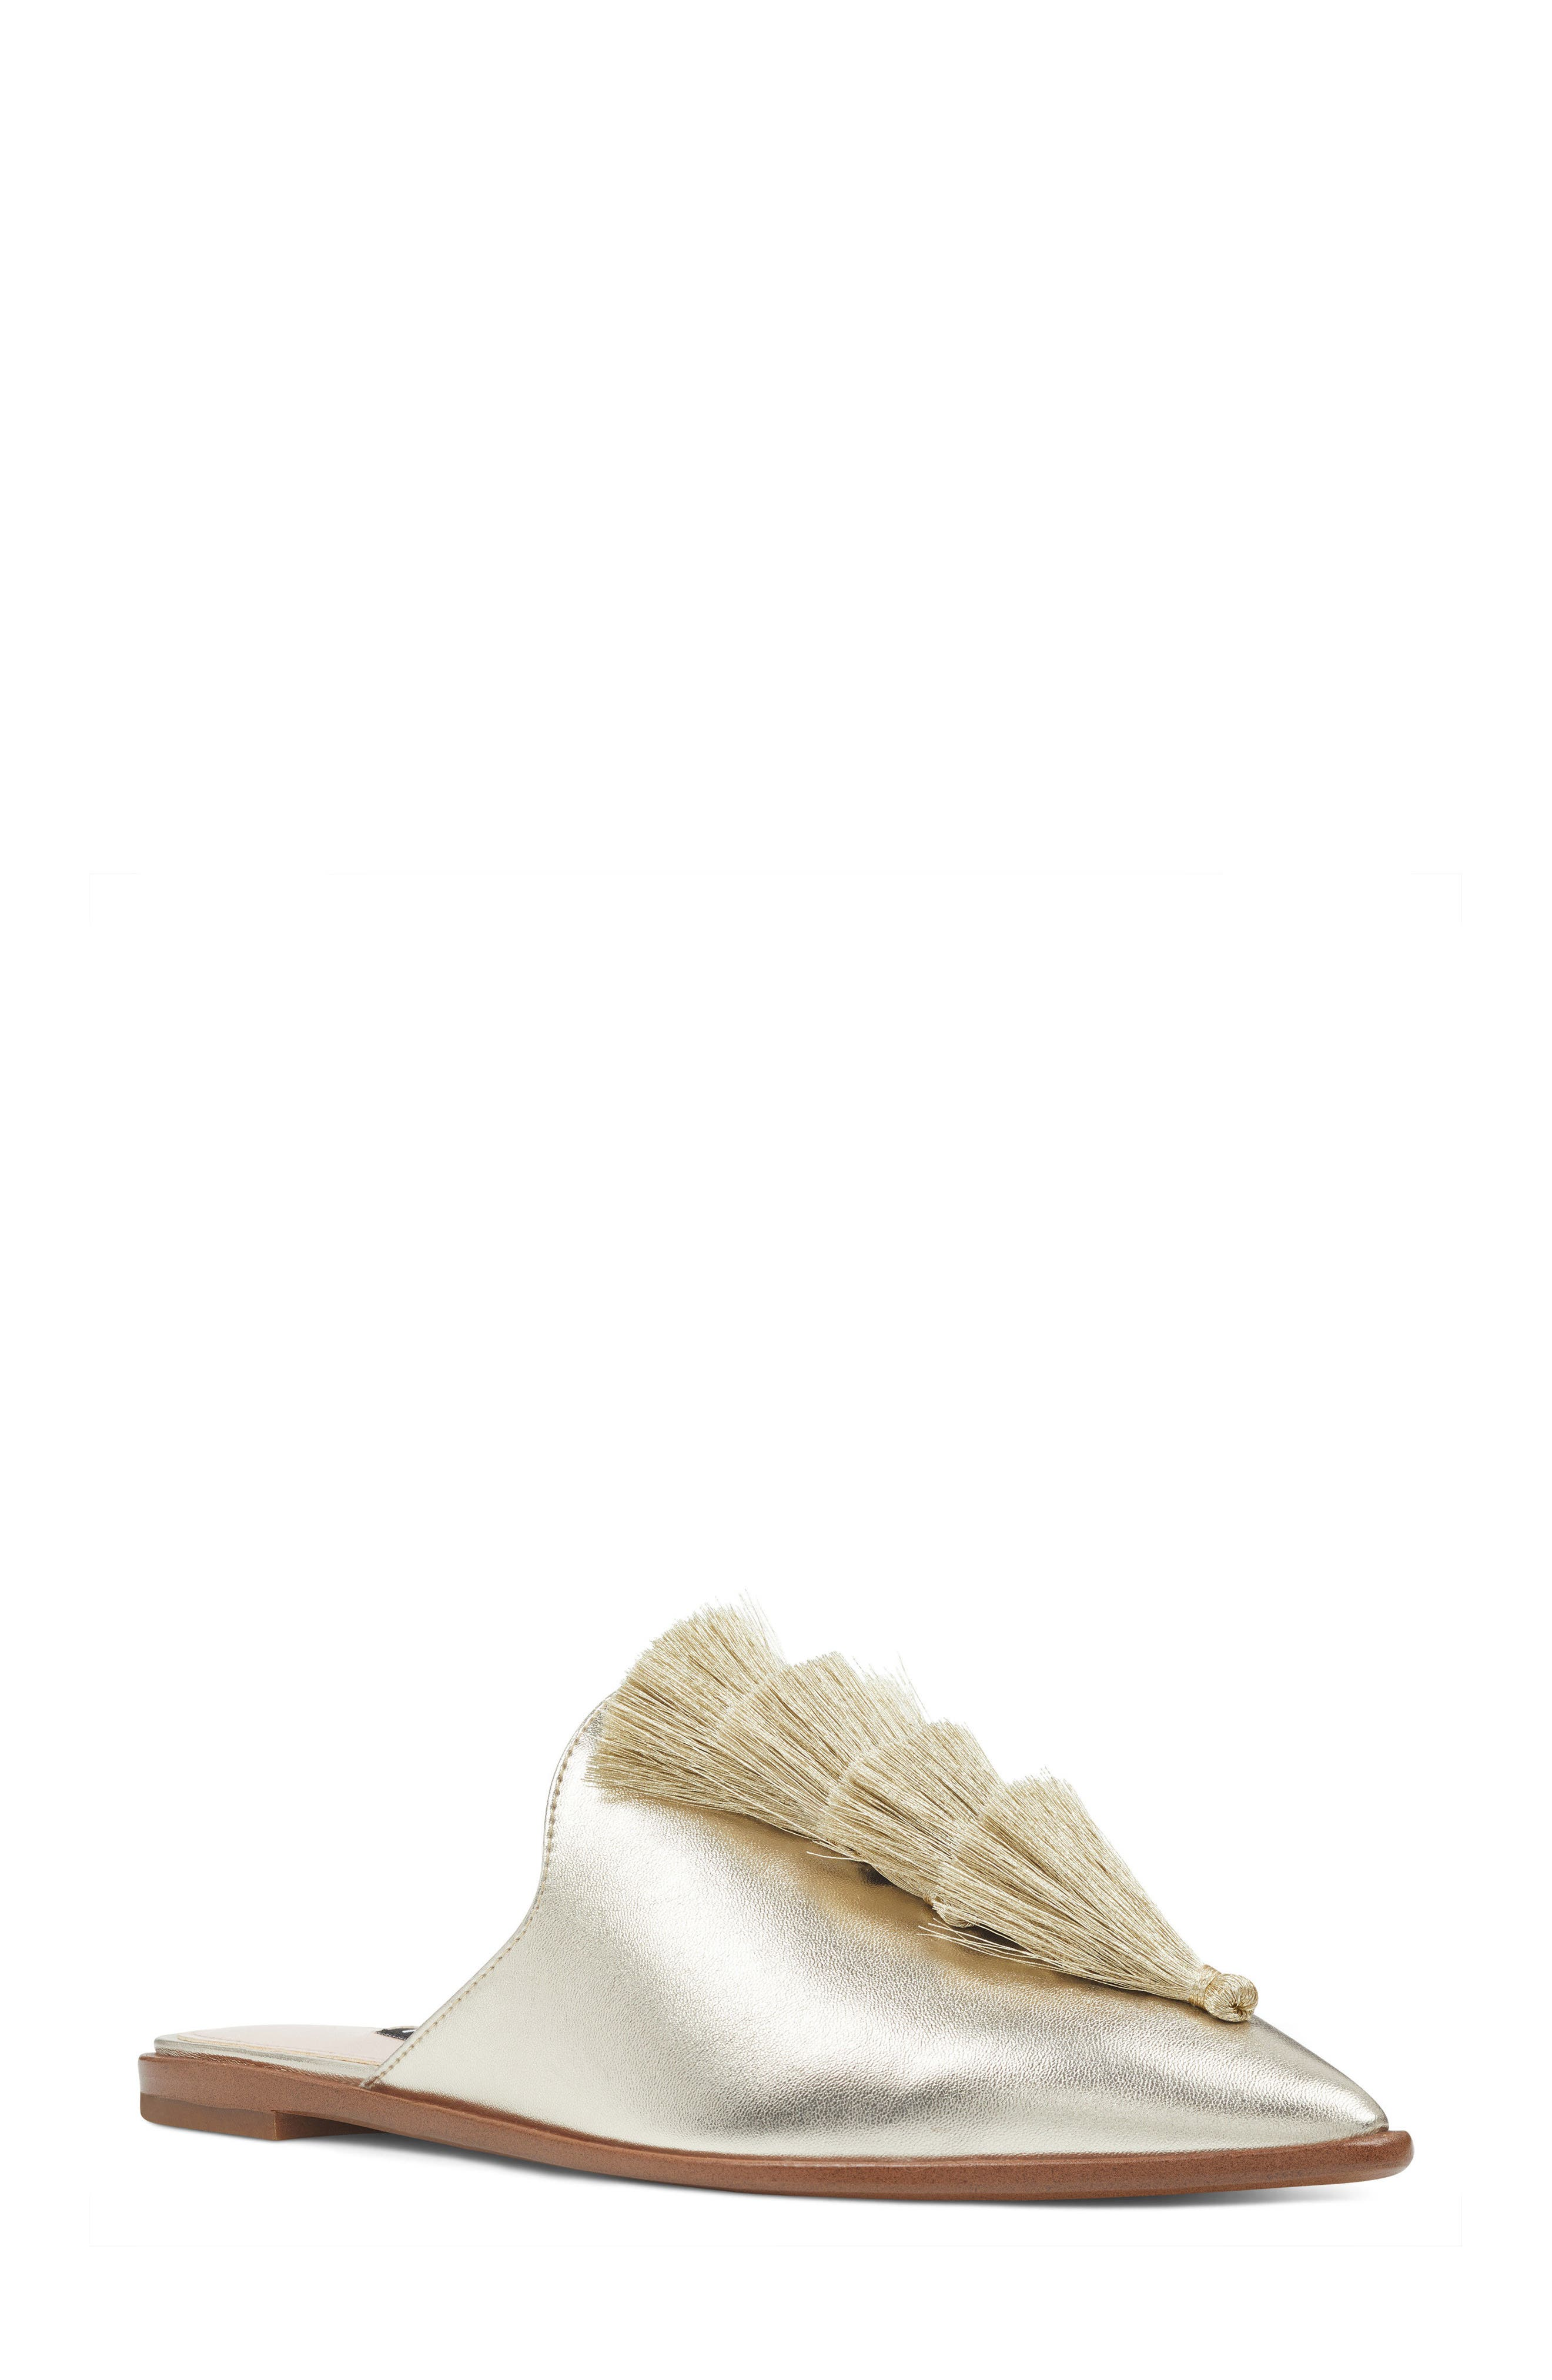 Ollial Fringed Loafer Mule,                             Main thumbnail 1, color,                             LIGHT GOLD LEATHER